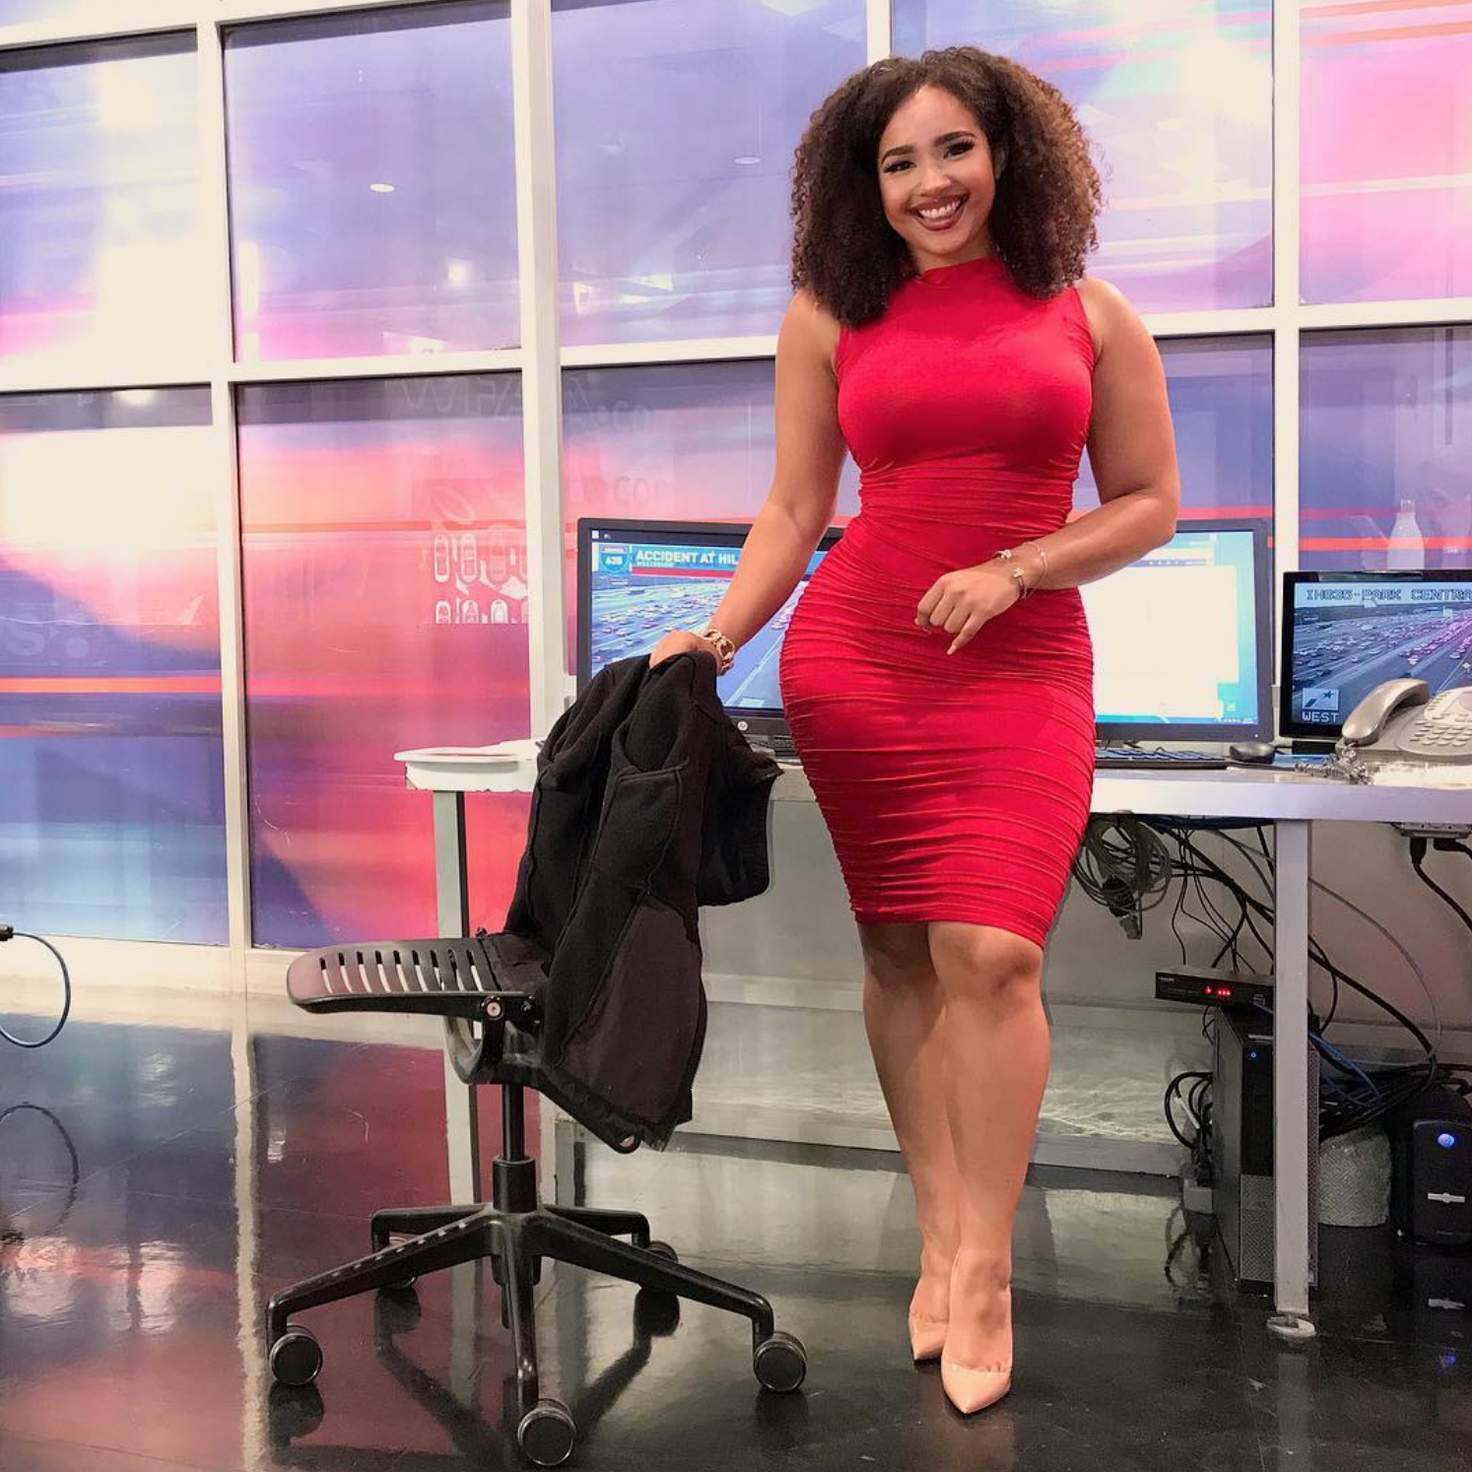 Dallas Reporter Responds To Body Shamers:  'I'm Not Going Anywhere'